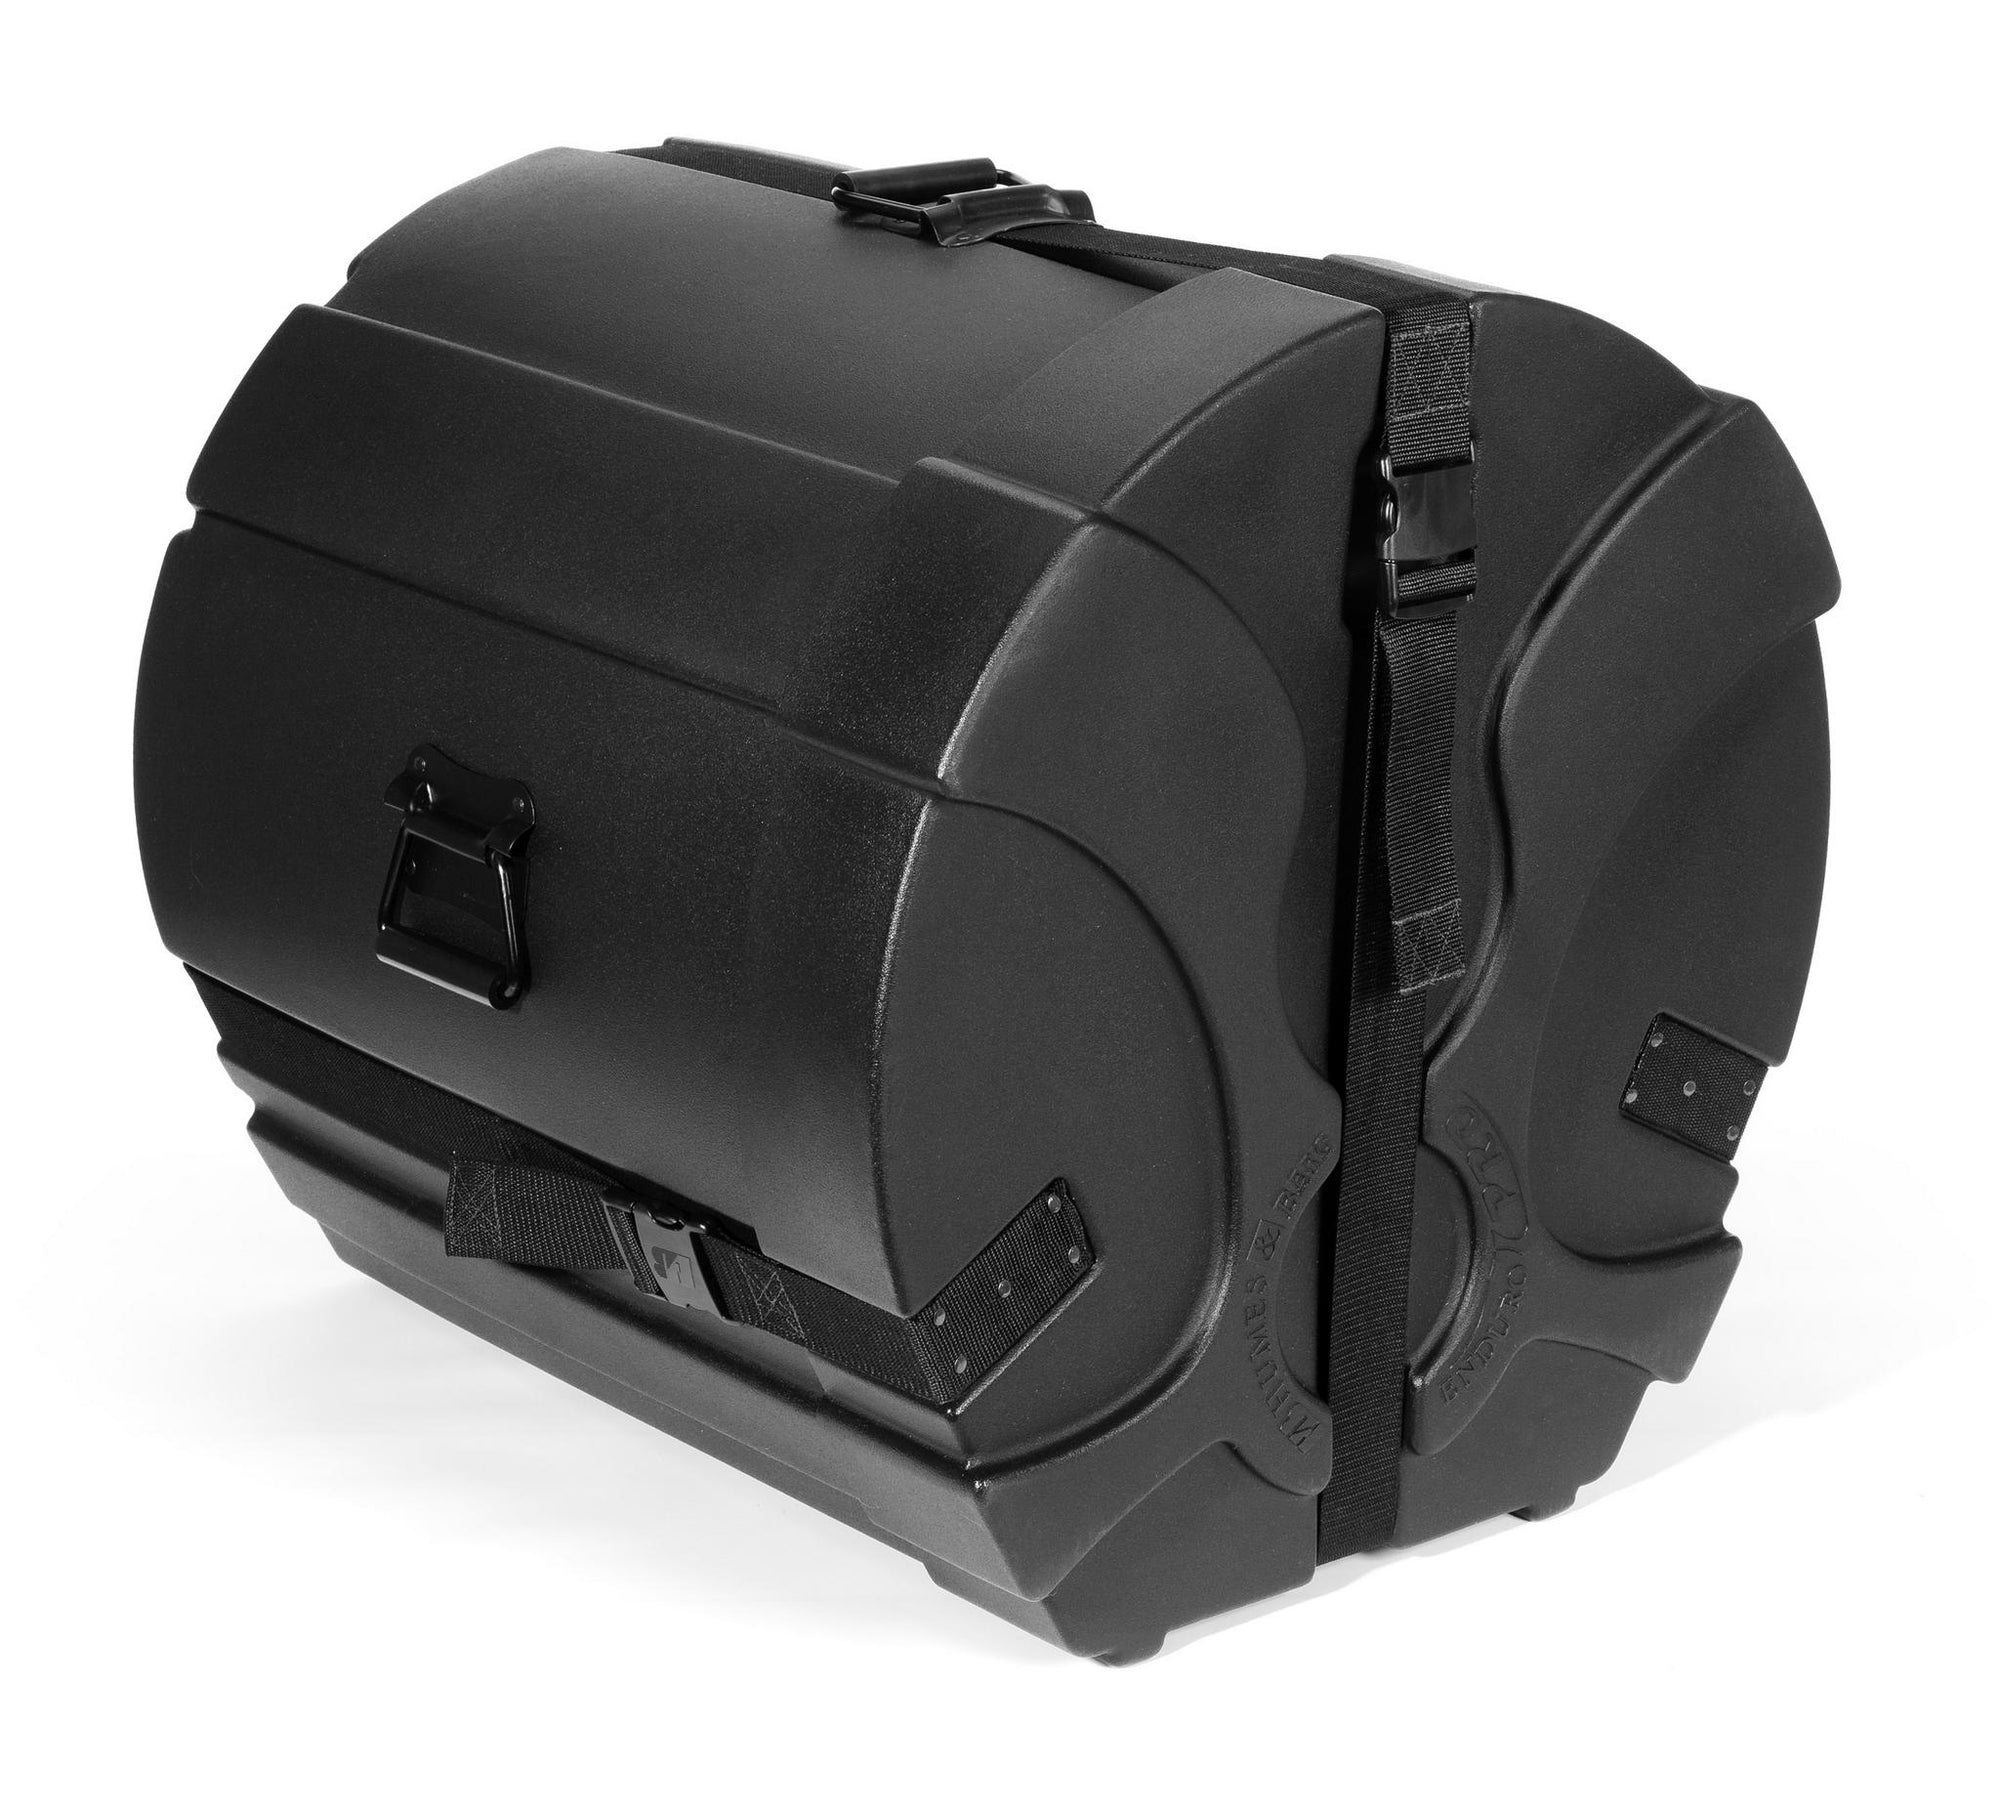 H&B  Enduro Pro 16 x 22 Inches Bass Drum Case